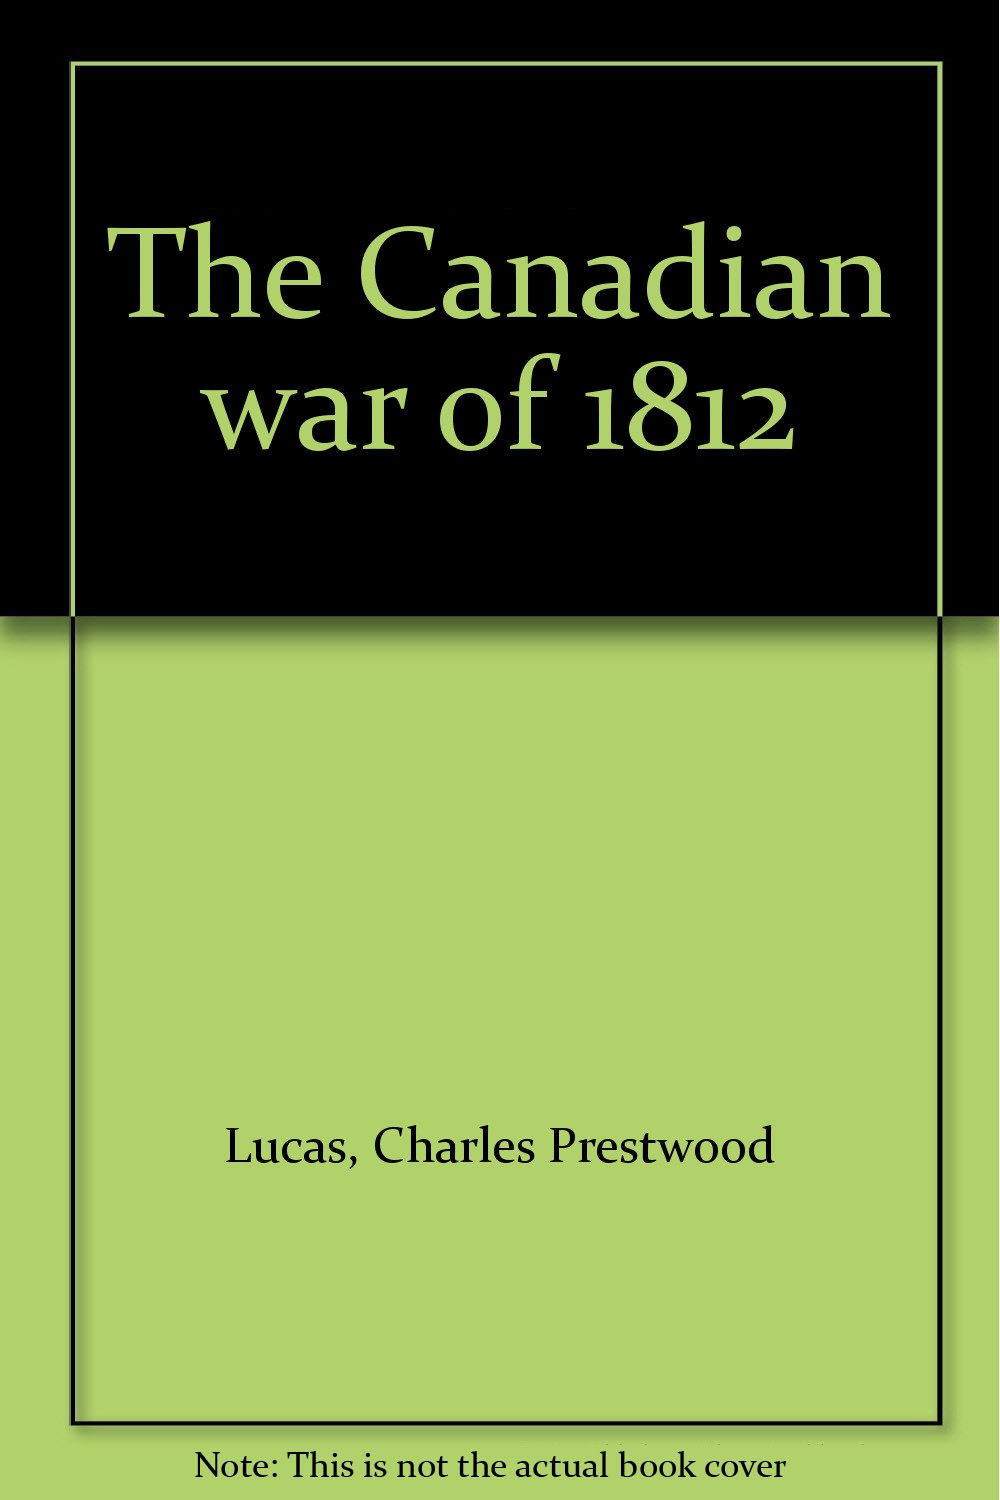 The Canadian war of 1812